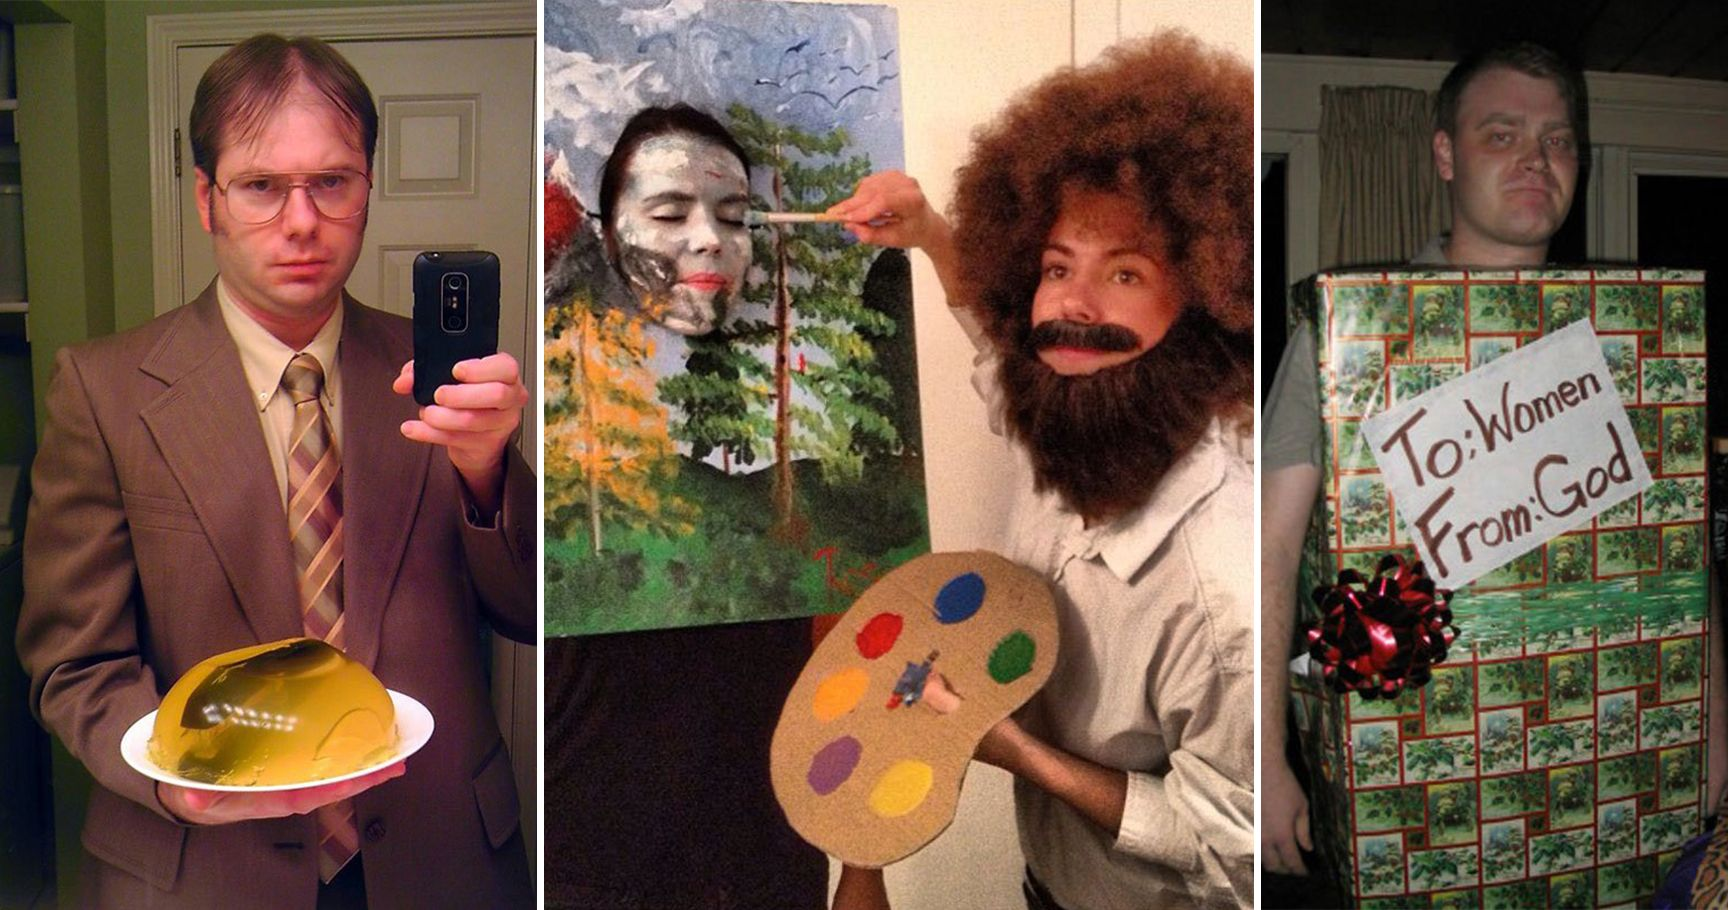 15 Hilarious Halloween Costumes That Are Low-Key Brilliant